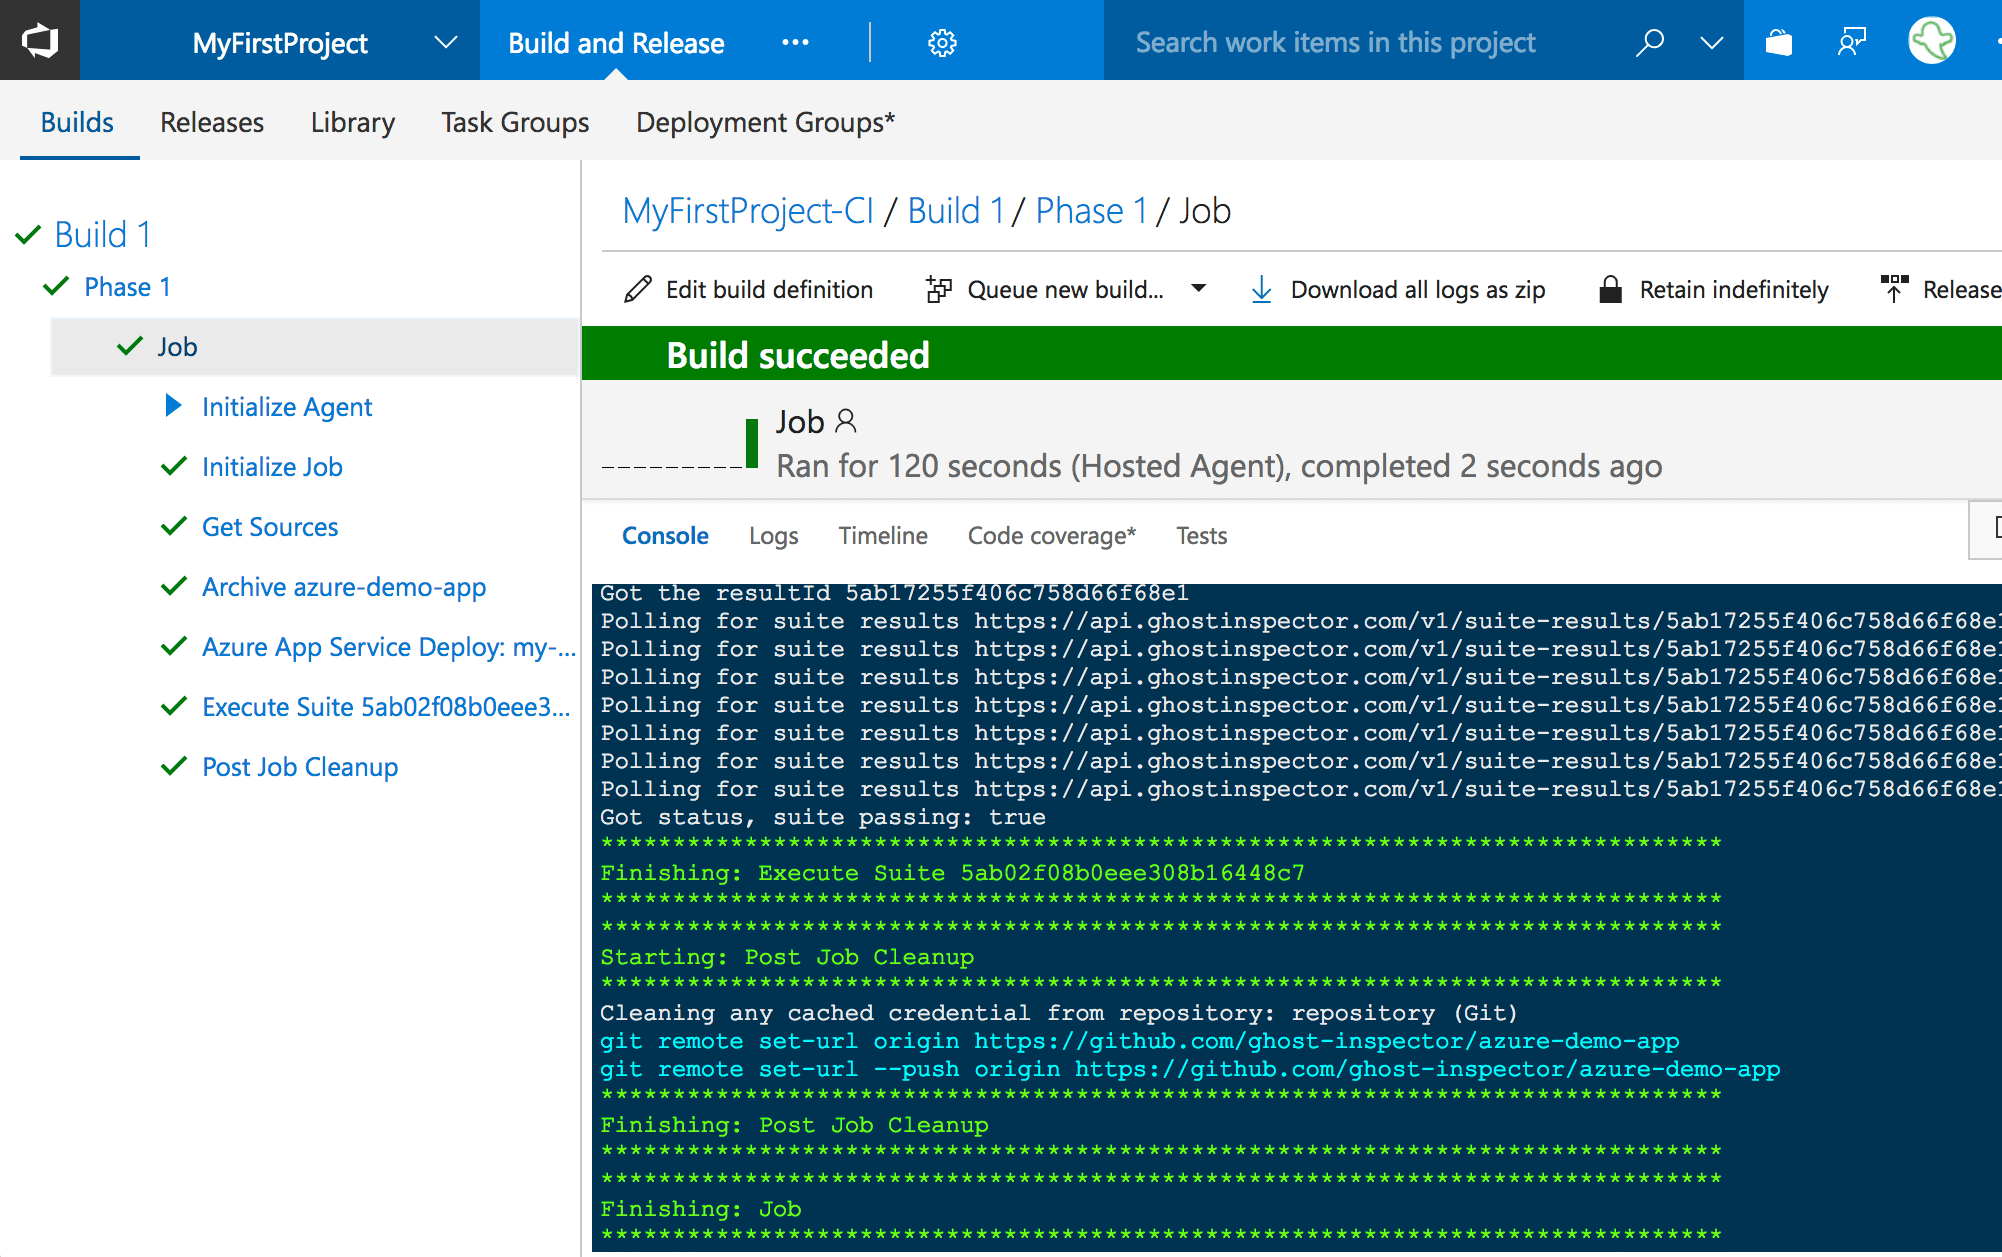 The VSTS build logs